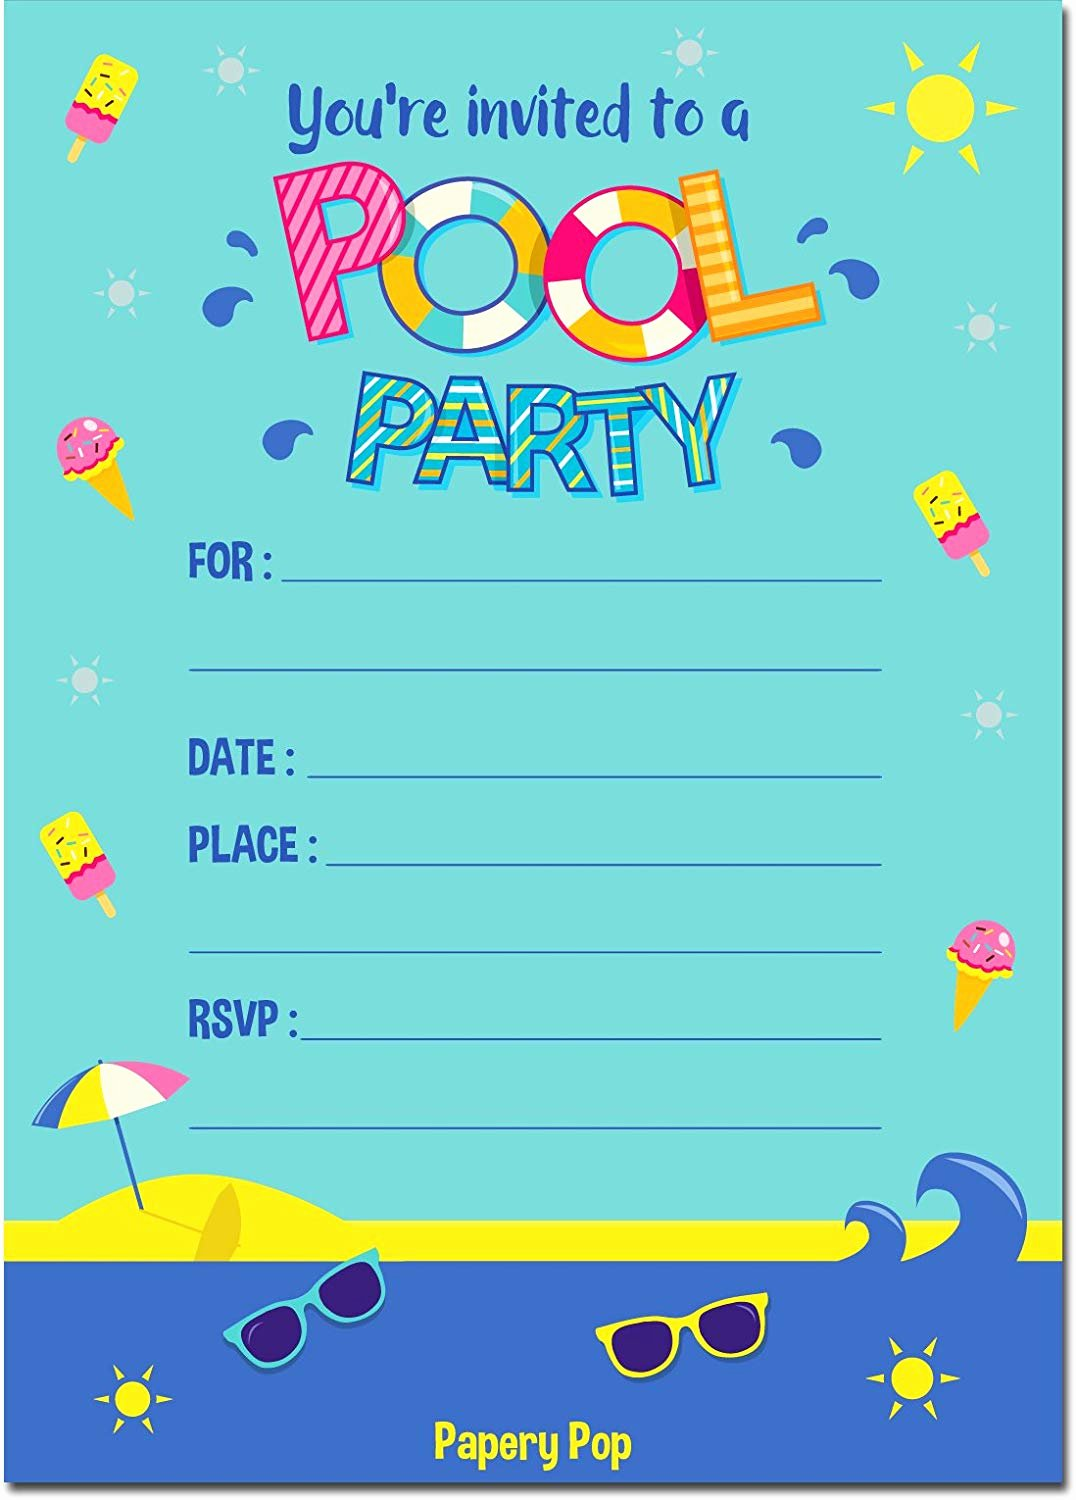 Pool Party Invitations Template Lovely Pool Party Invitations with Envelopes 15 Count Kids